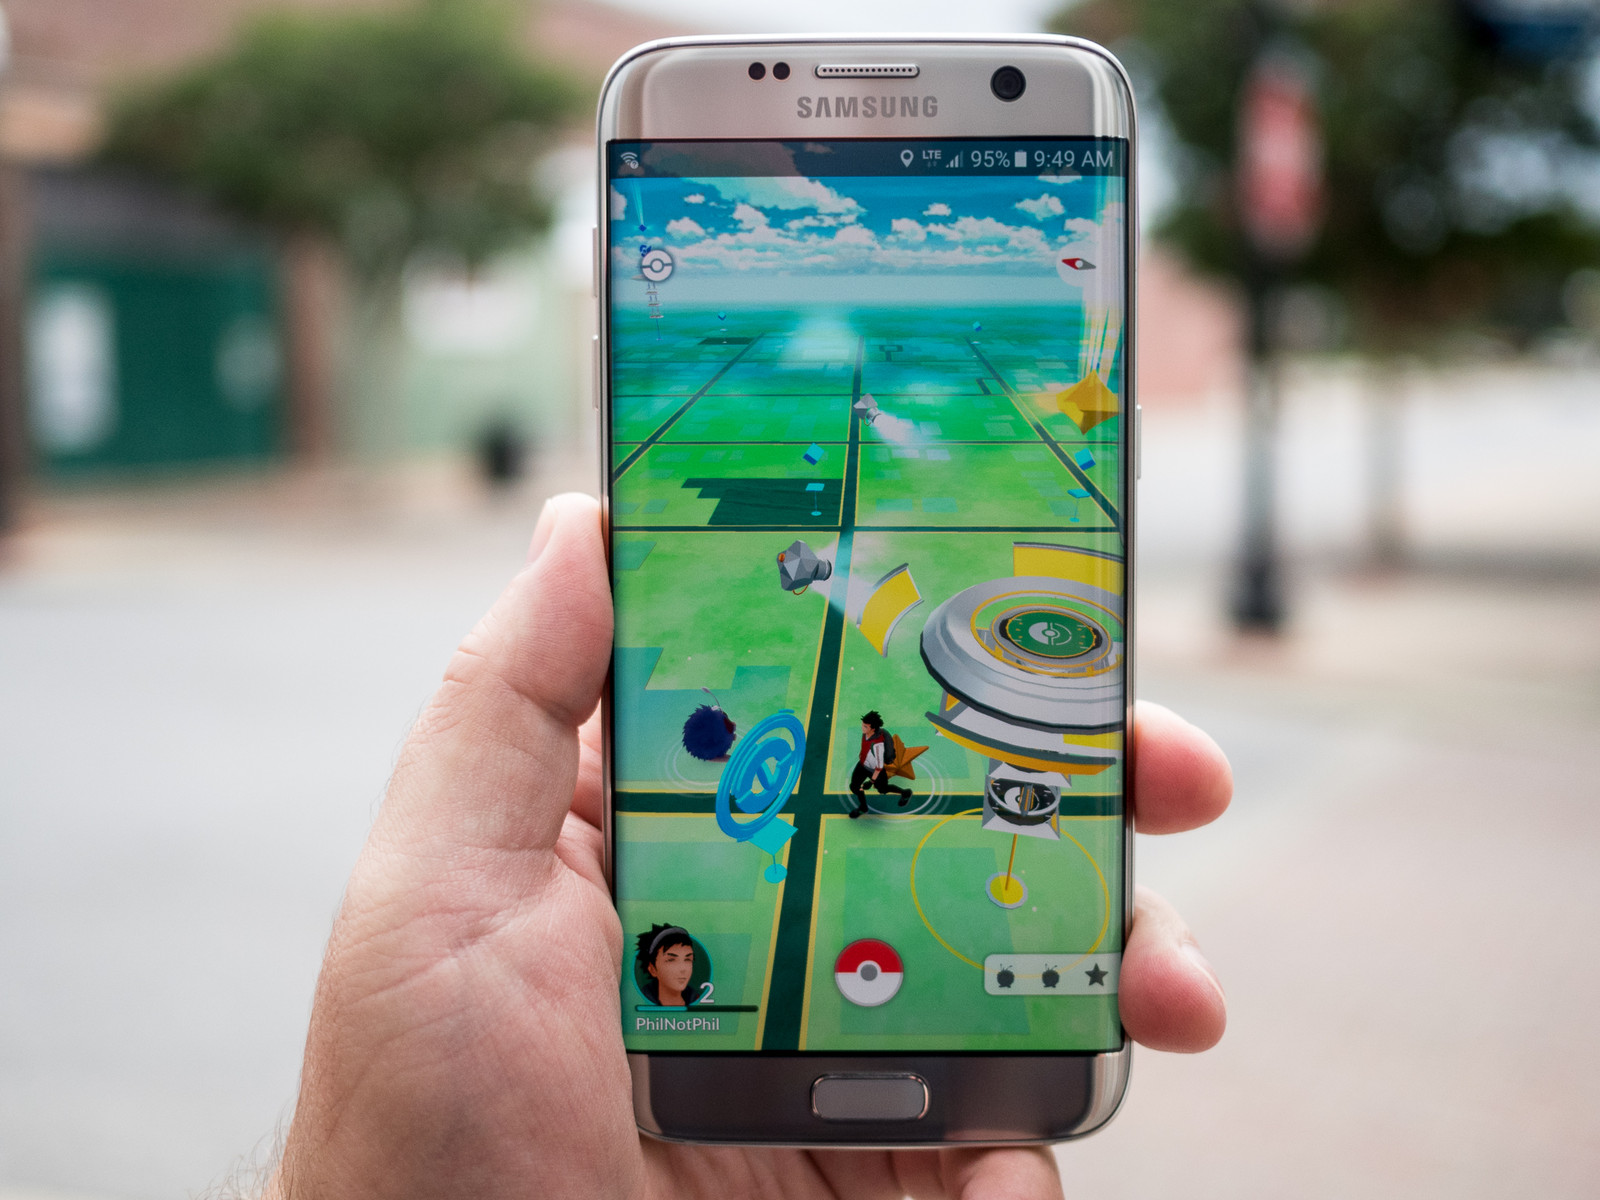 5 Best Phones for Pokemon Go -2019 [Buyer's Guide] - PopSmartphone